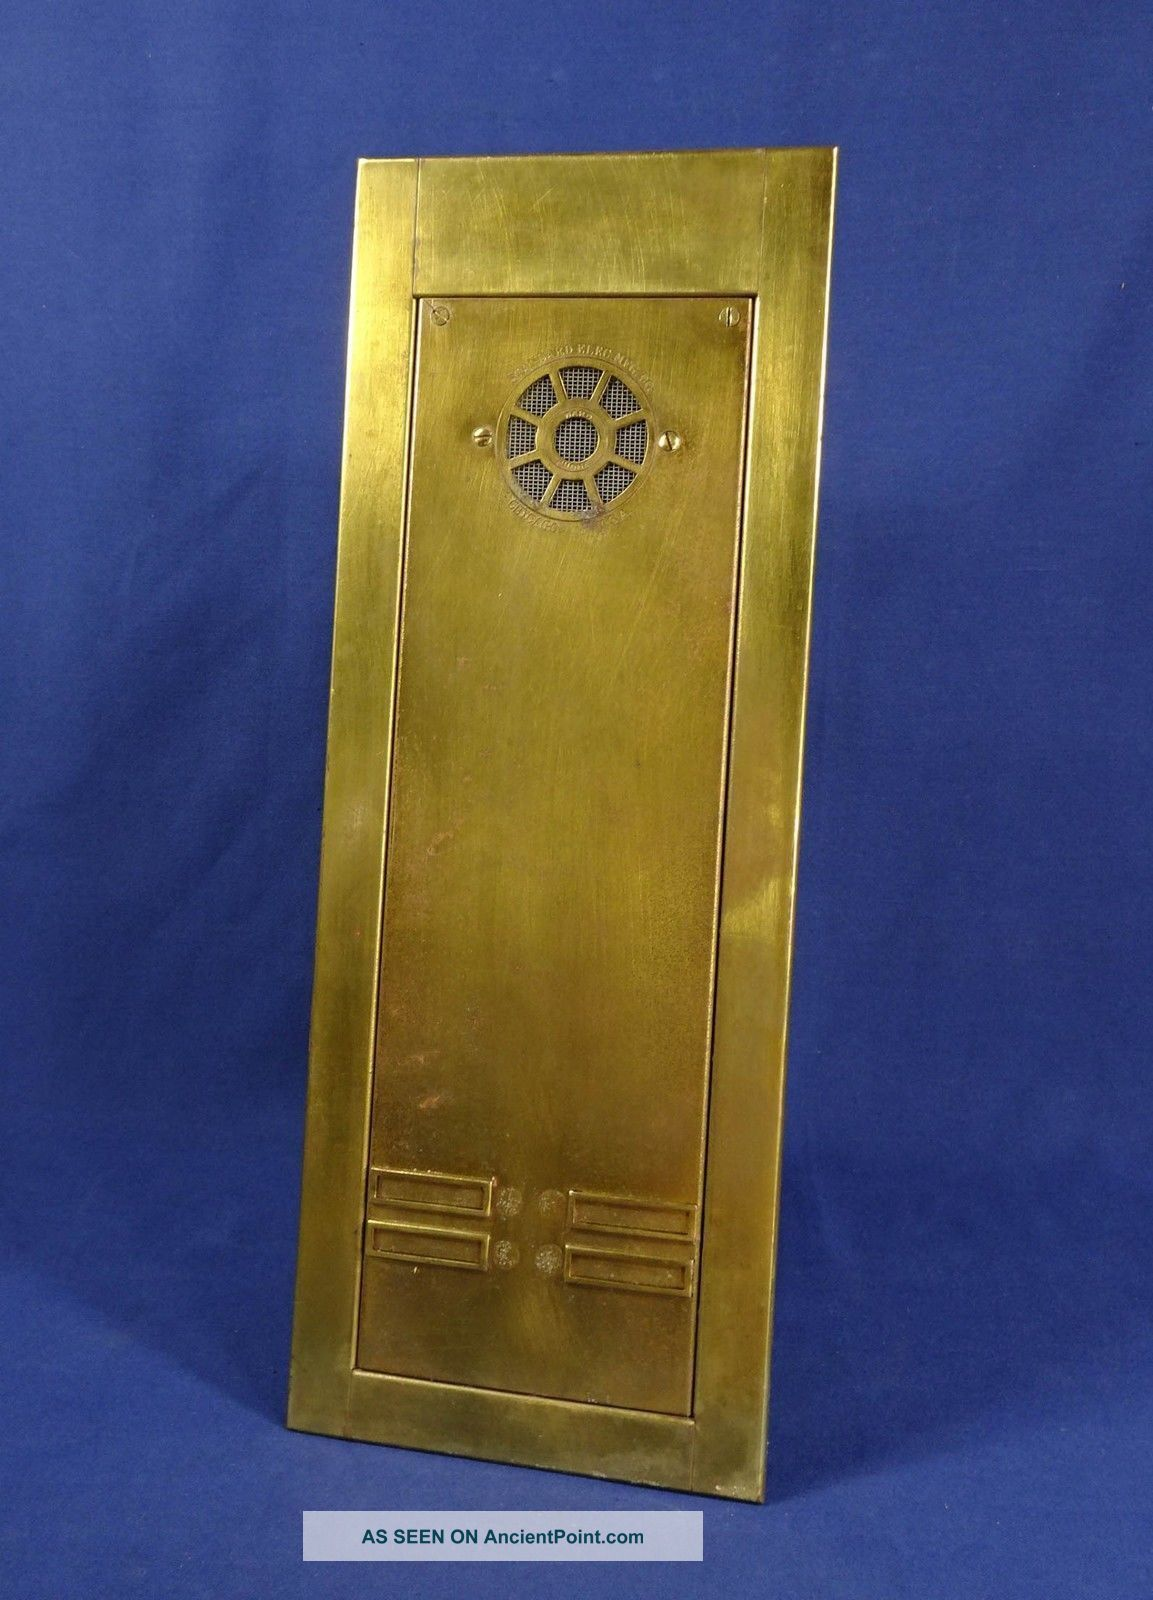 Vtg Standard Electric Brass Apartment Intercom Panel Call Box Antique Salvage Other Antique Architectural photo